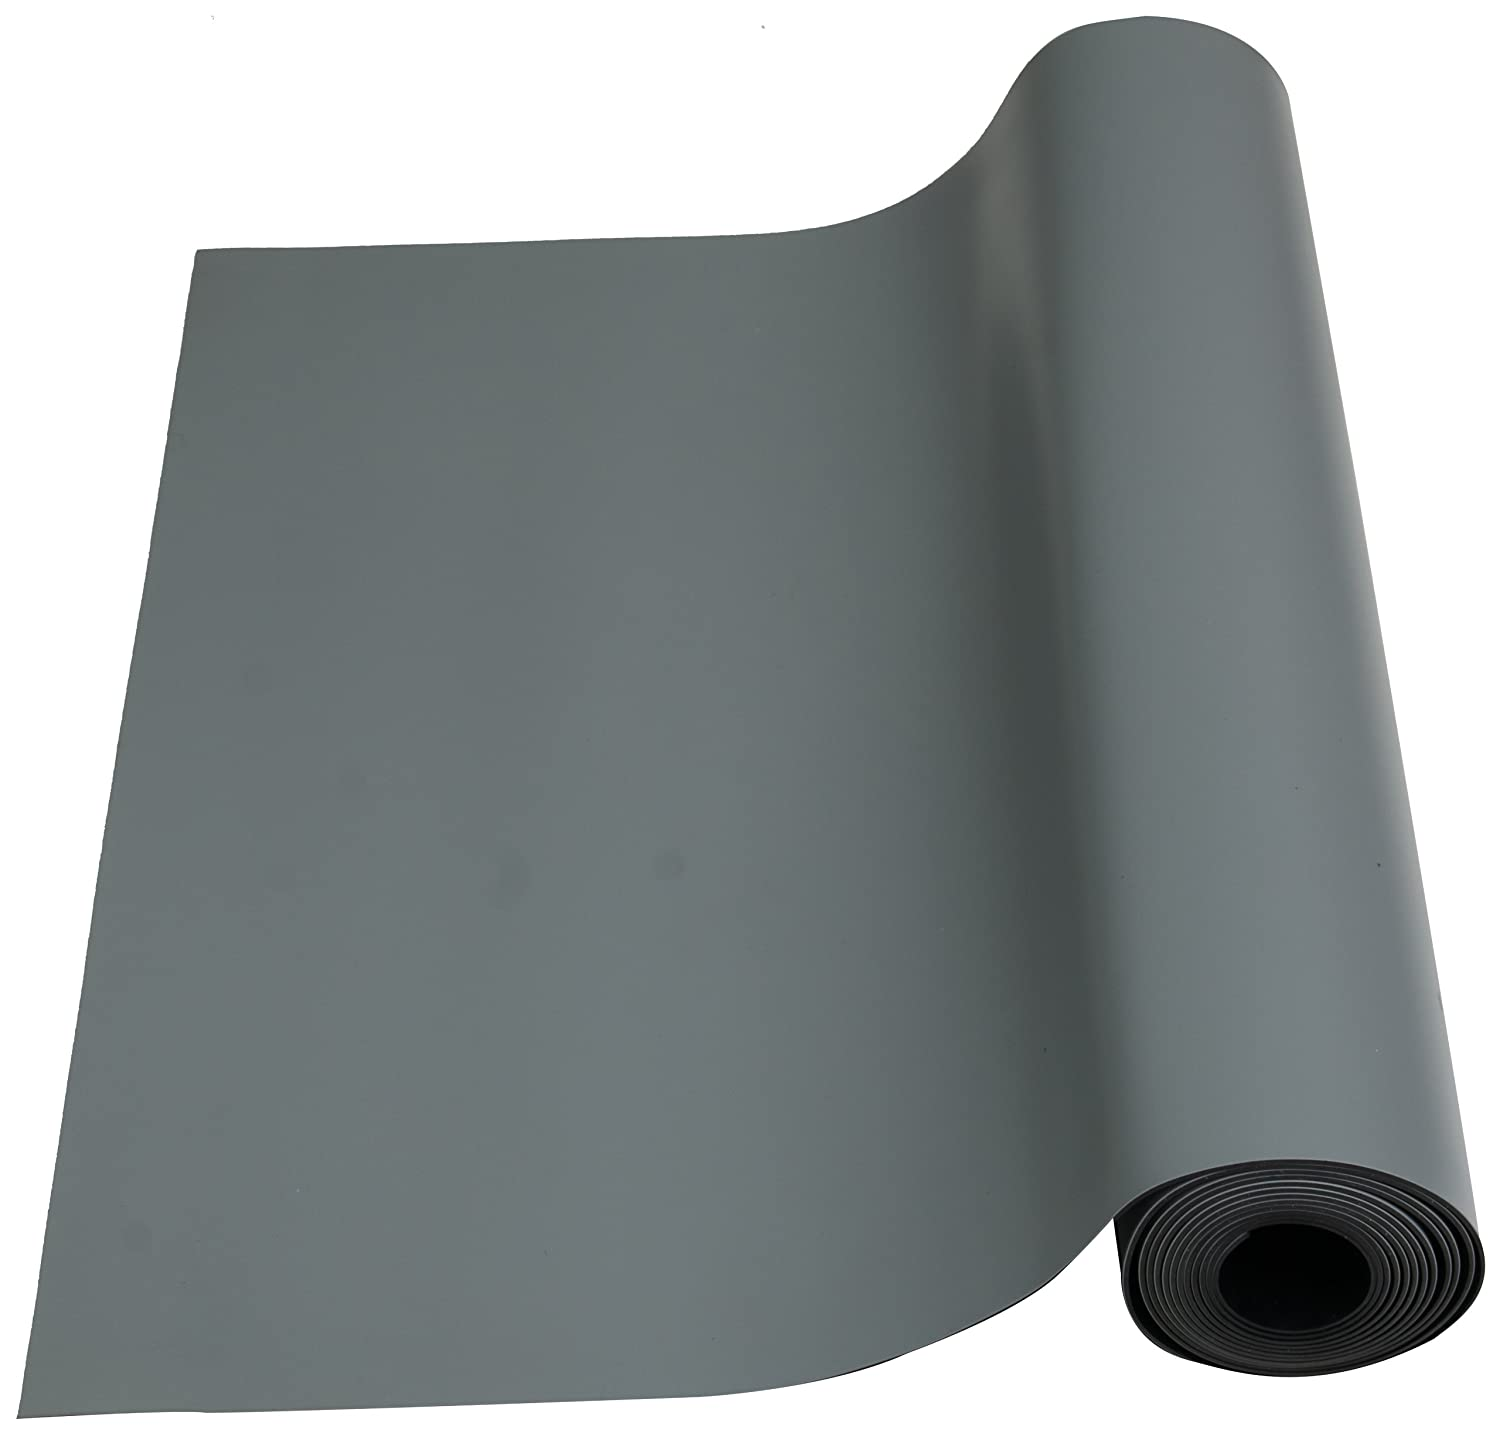 ESDProduct Rubber High Temperature Mat Roll, 5/64 Thick, 10' Length, 3' Width, Gray by ESDProduct B009WUDTCU